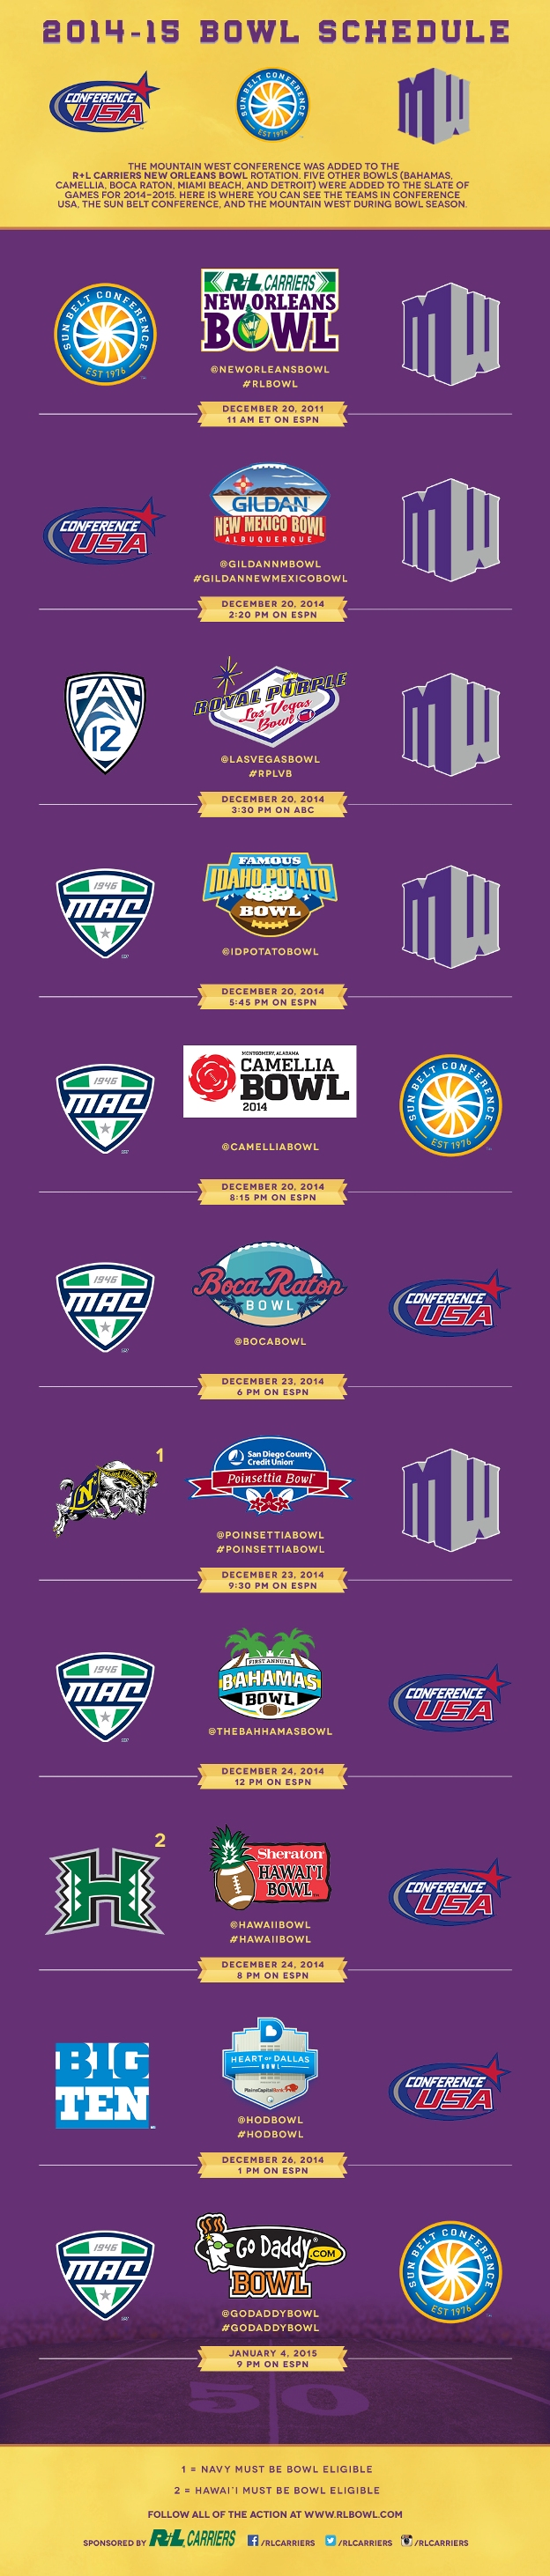 R+L Carriers Bowl conference bowl schedules